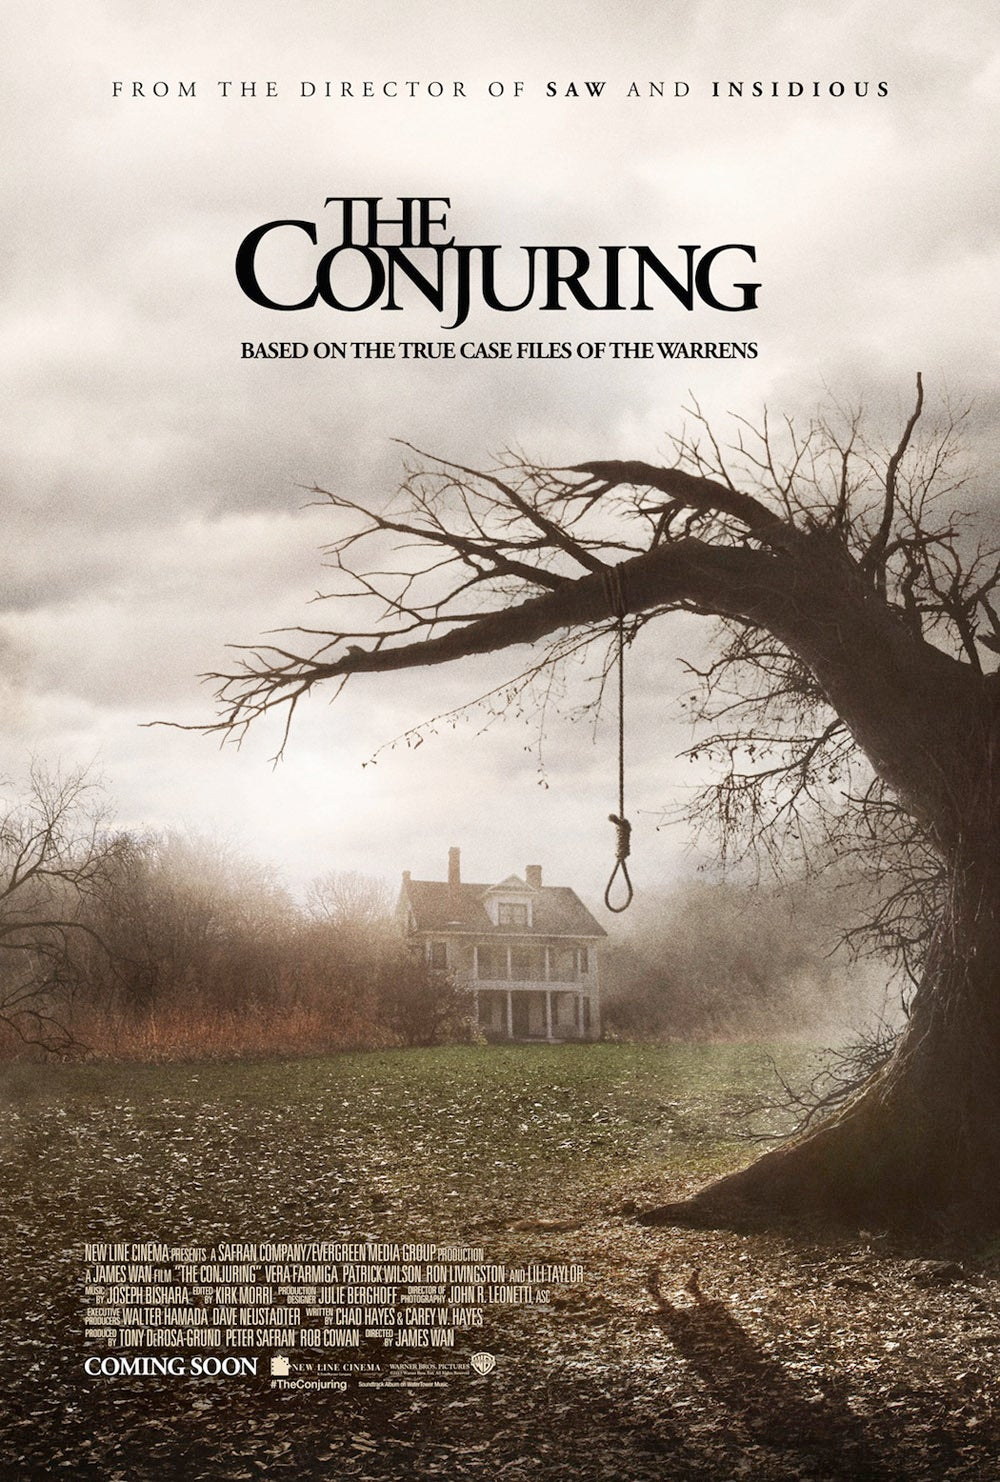 https://i1.wp.com/media.comicbook.com/wp-content/uploads/2013/07/the-conjuring-poster.jpg